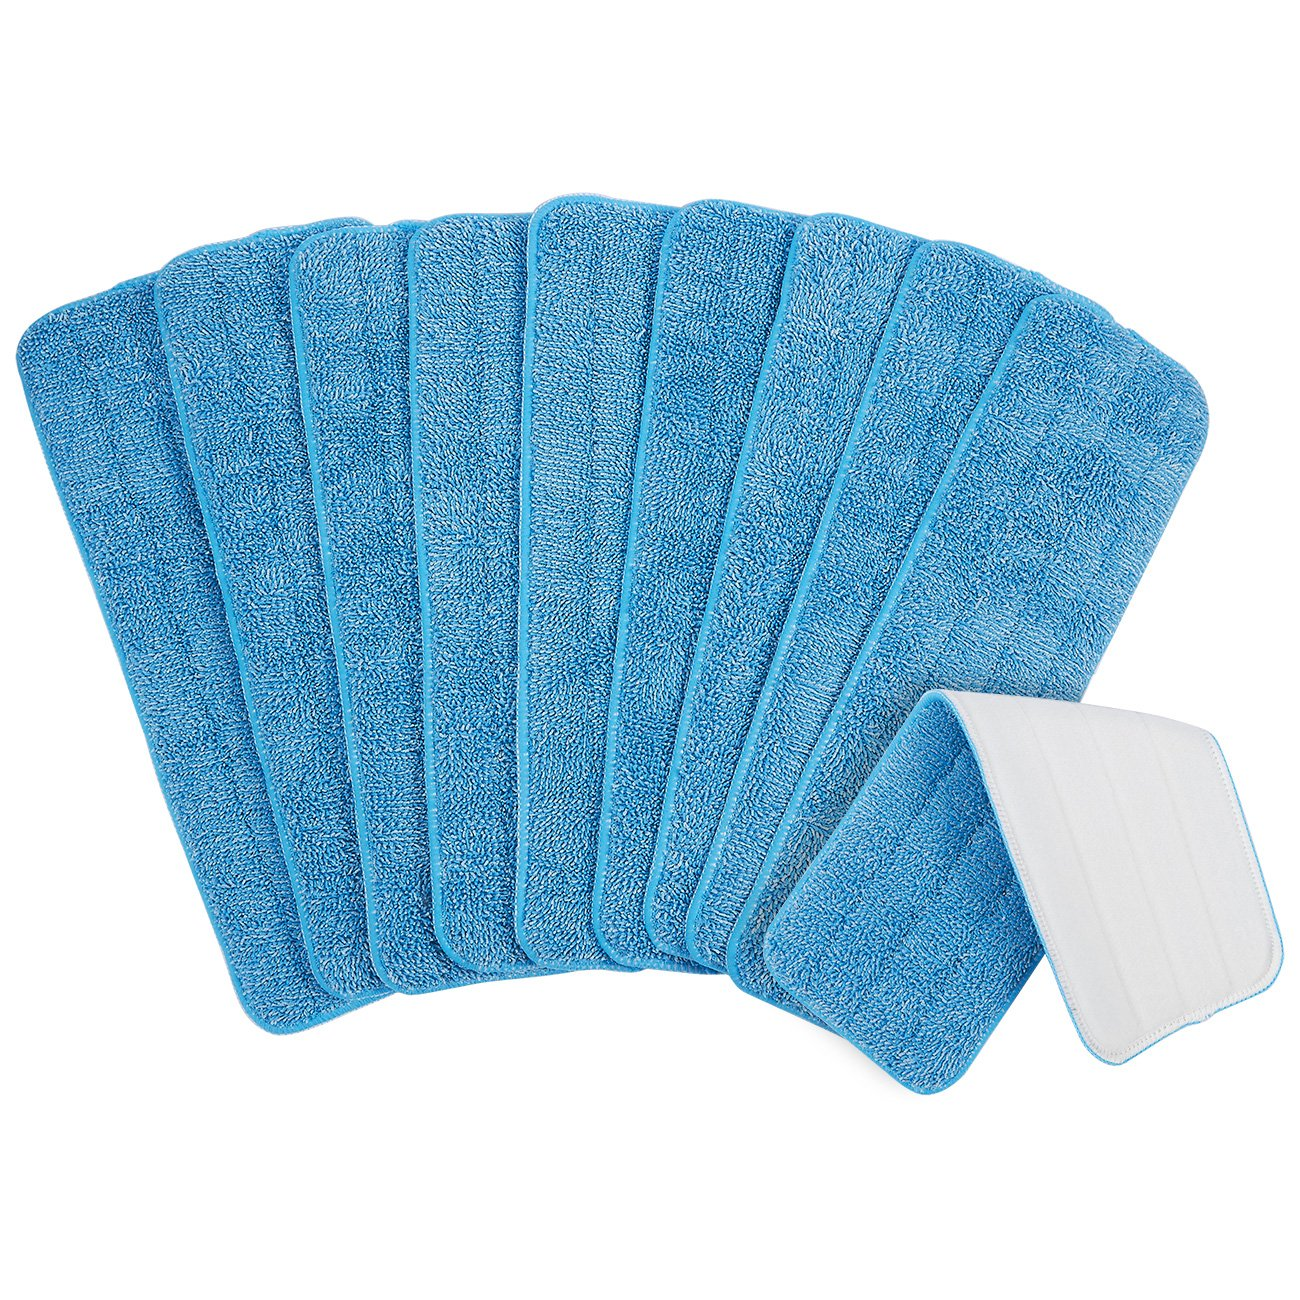 Pack of 10 Microfiber Mop Pads - Reusable Floor Mop Pads - Suitable for Hook and Loop Mop Heads, 16.5 x 0.25 x 5.38 Inches, Blue